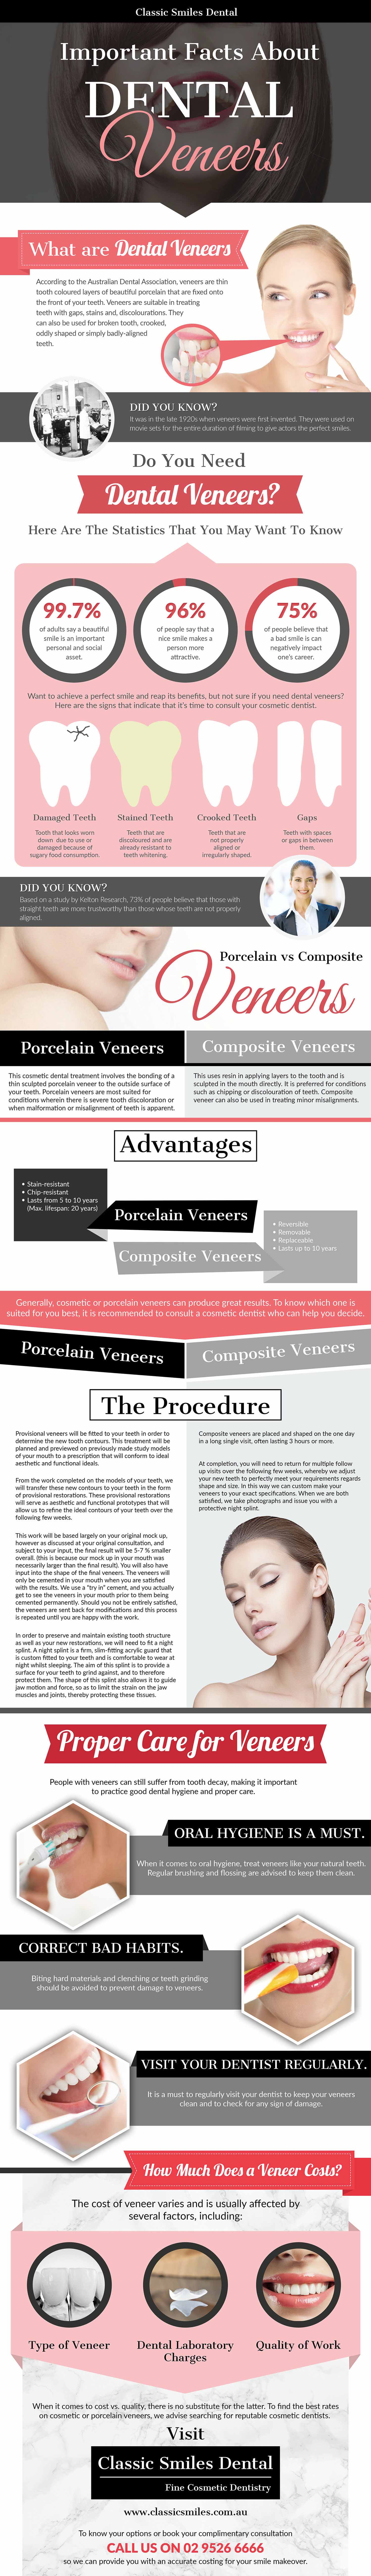 How to Get That Perfect Set of Teeth: Important Facts About Dental Veneers - Infographic